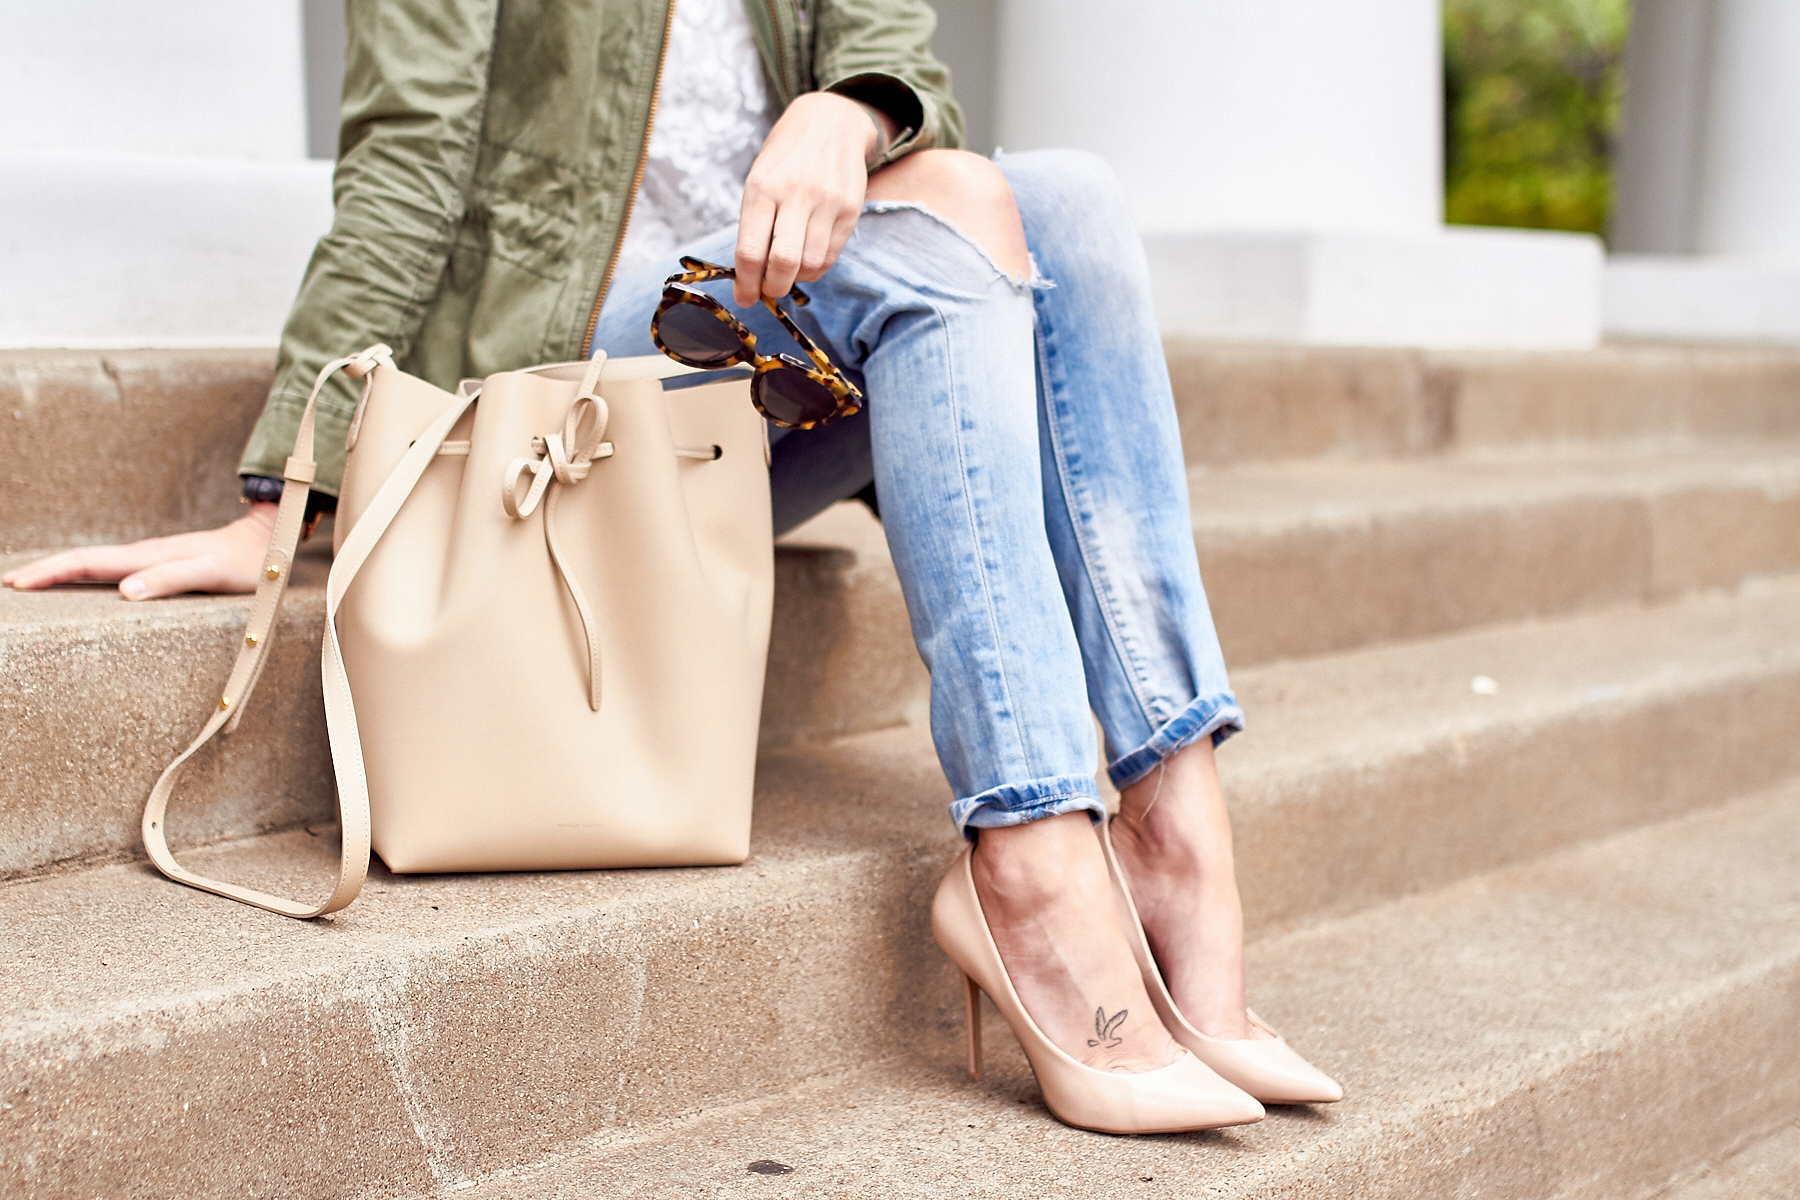 fashion-jackson-mansur-gavriel-bucket-bag-denim-ripped-skinny-jeans-nude-pumps-tortoise-sunglasses-utility-jacket